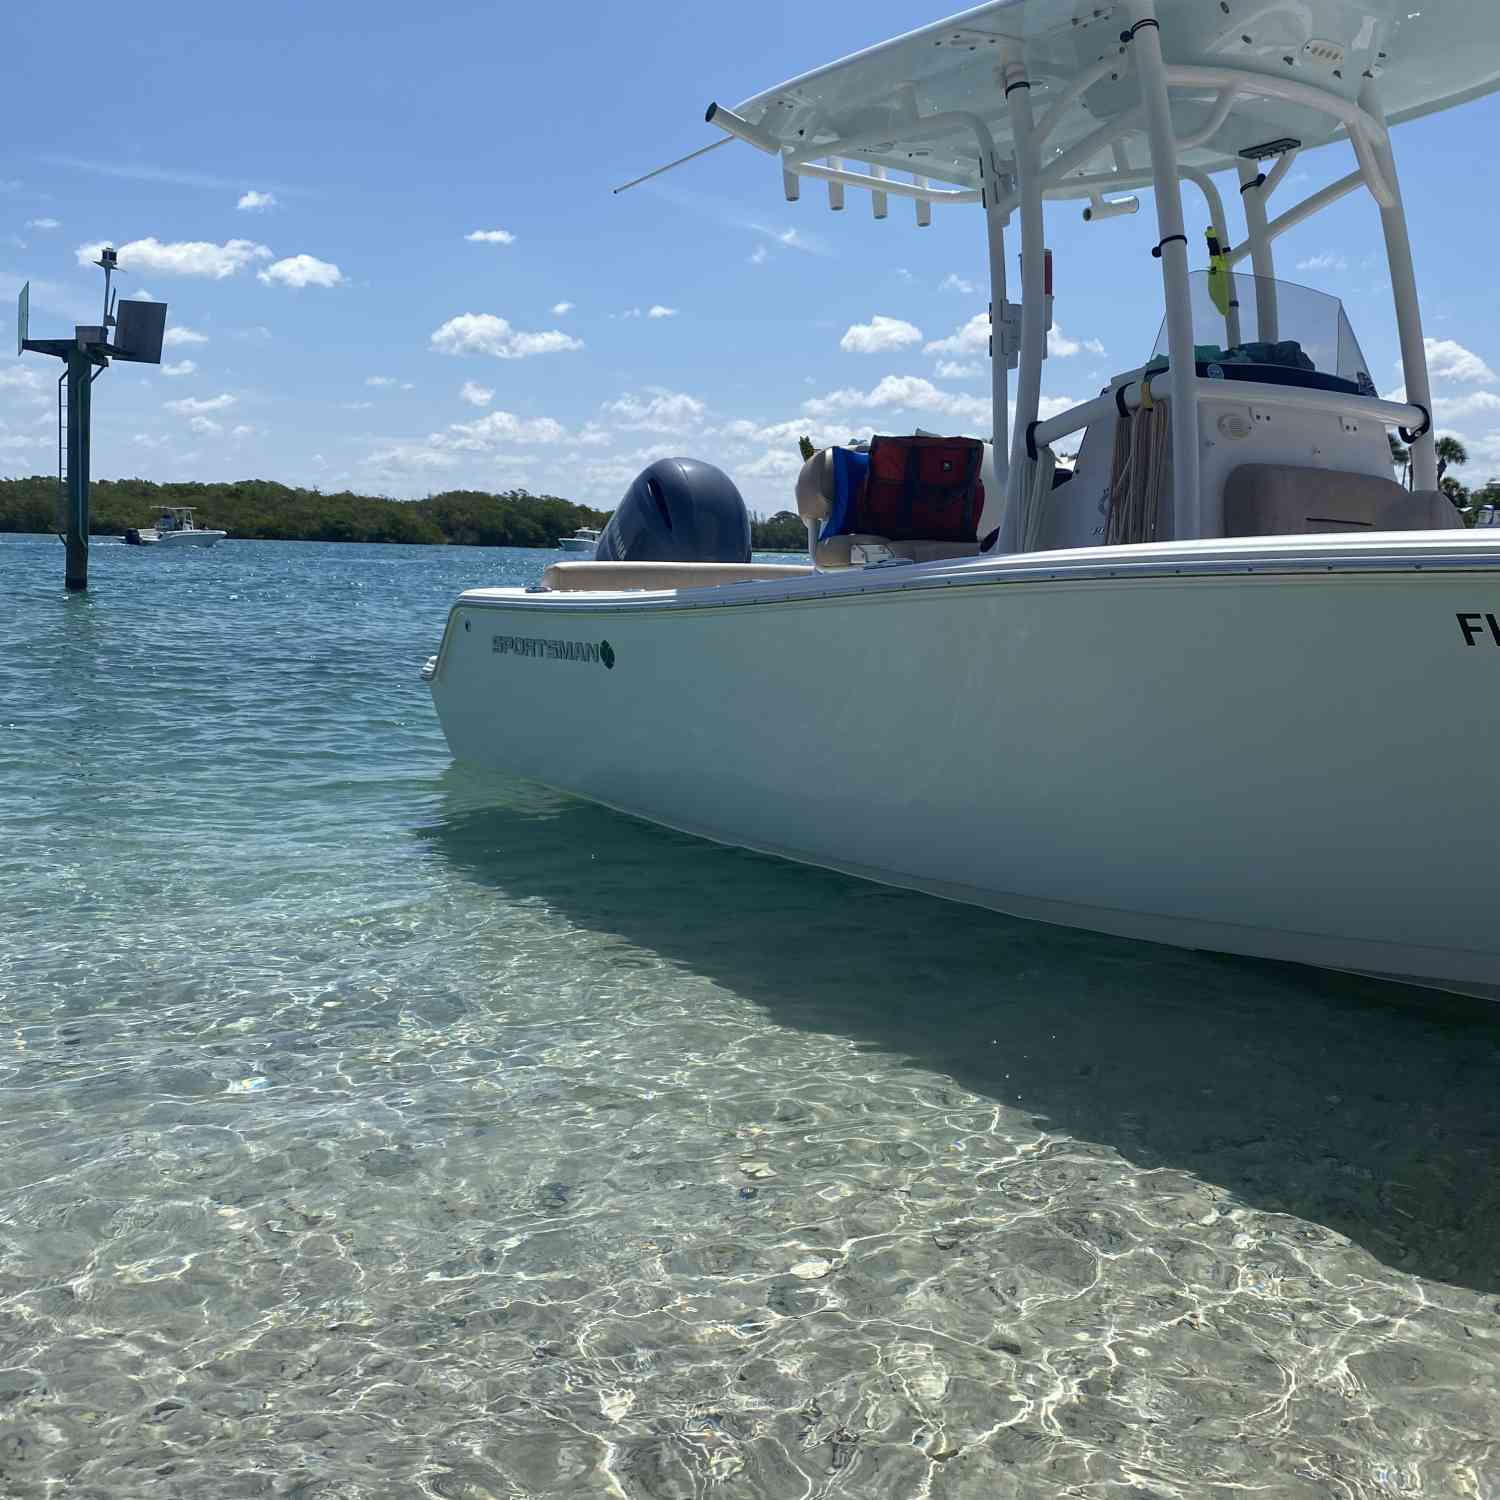 Love taking the boat to the sand bars to hang out! Water at the Venice/Nokomis is so beautiful!